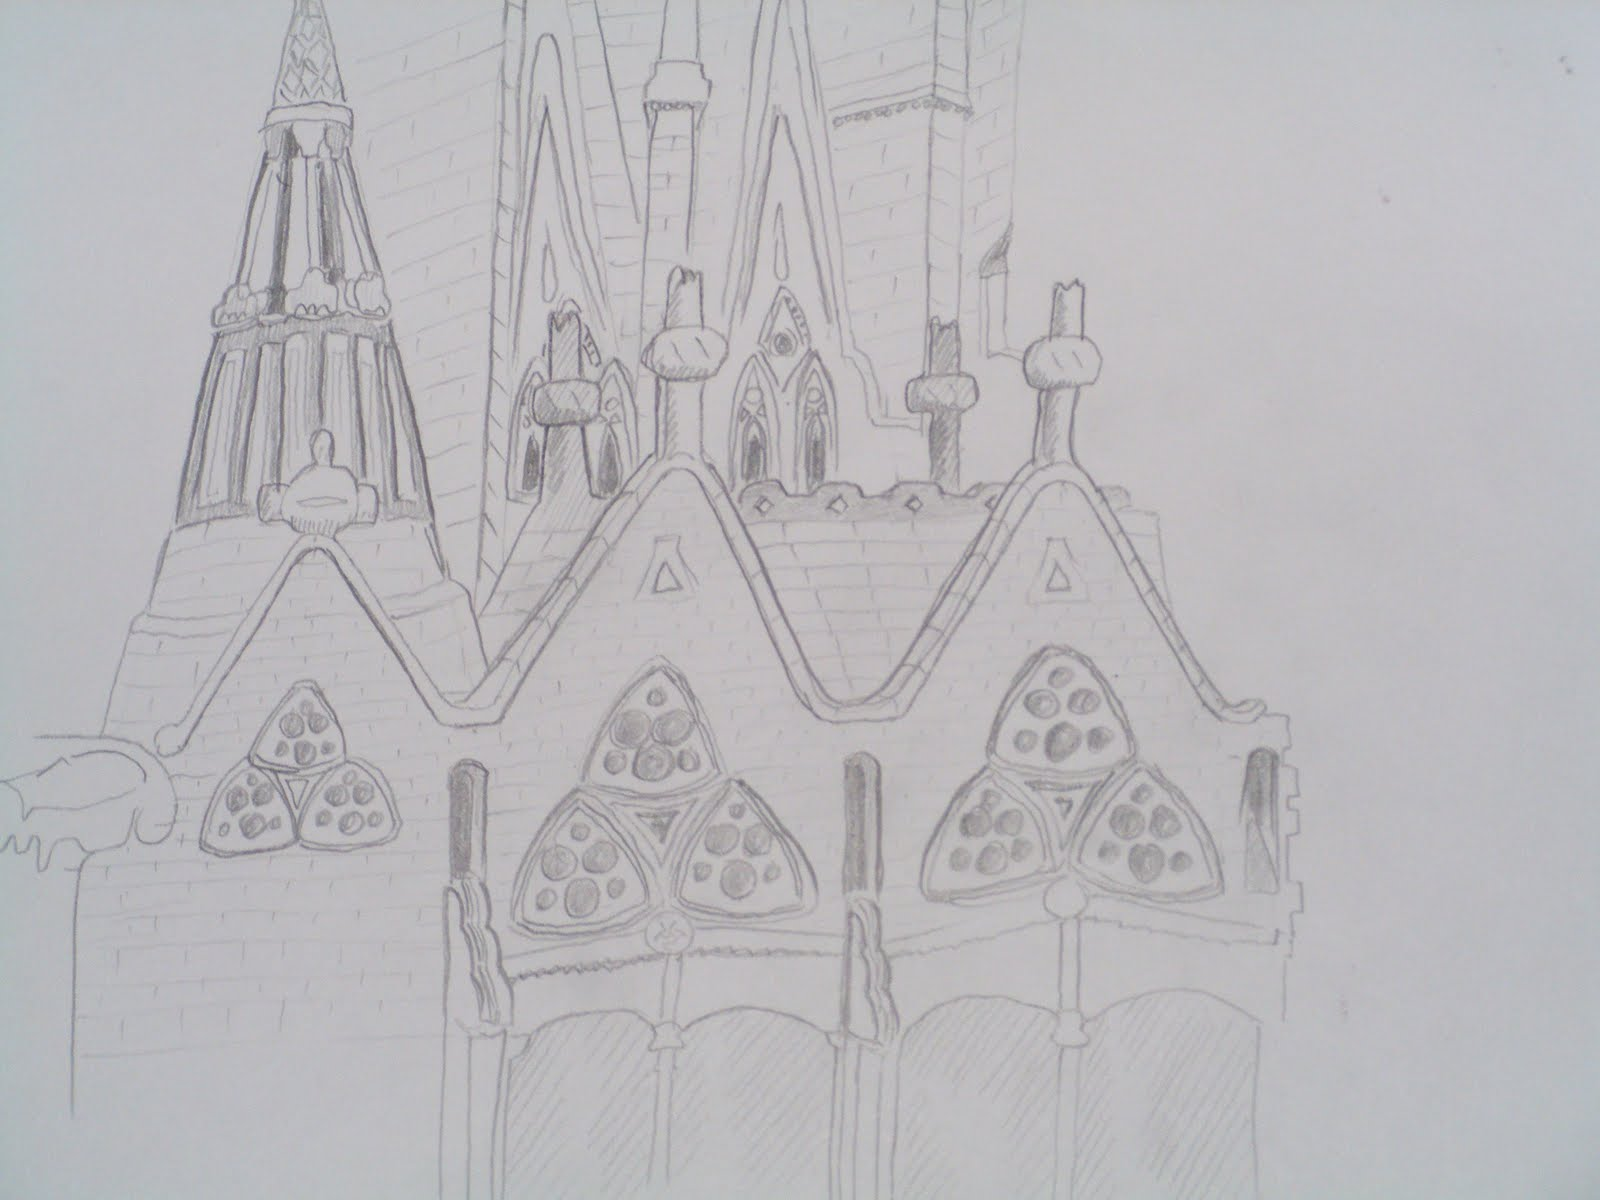 Projects of Zack Booth Simpson: Sagrada Familia sketch